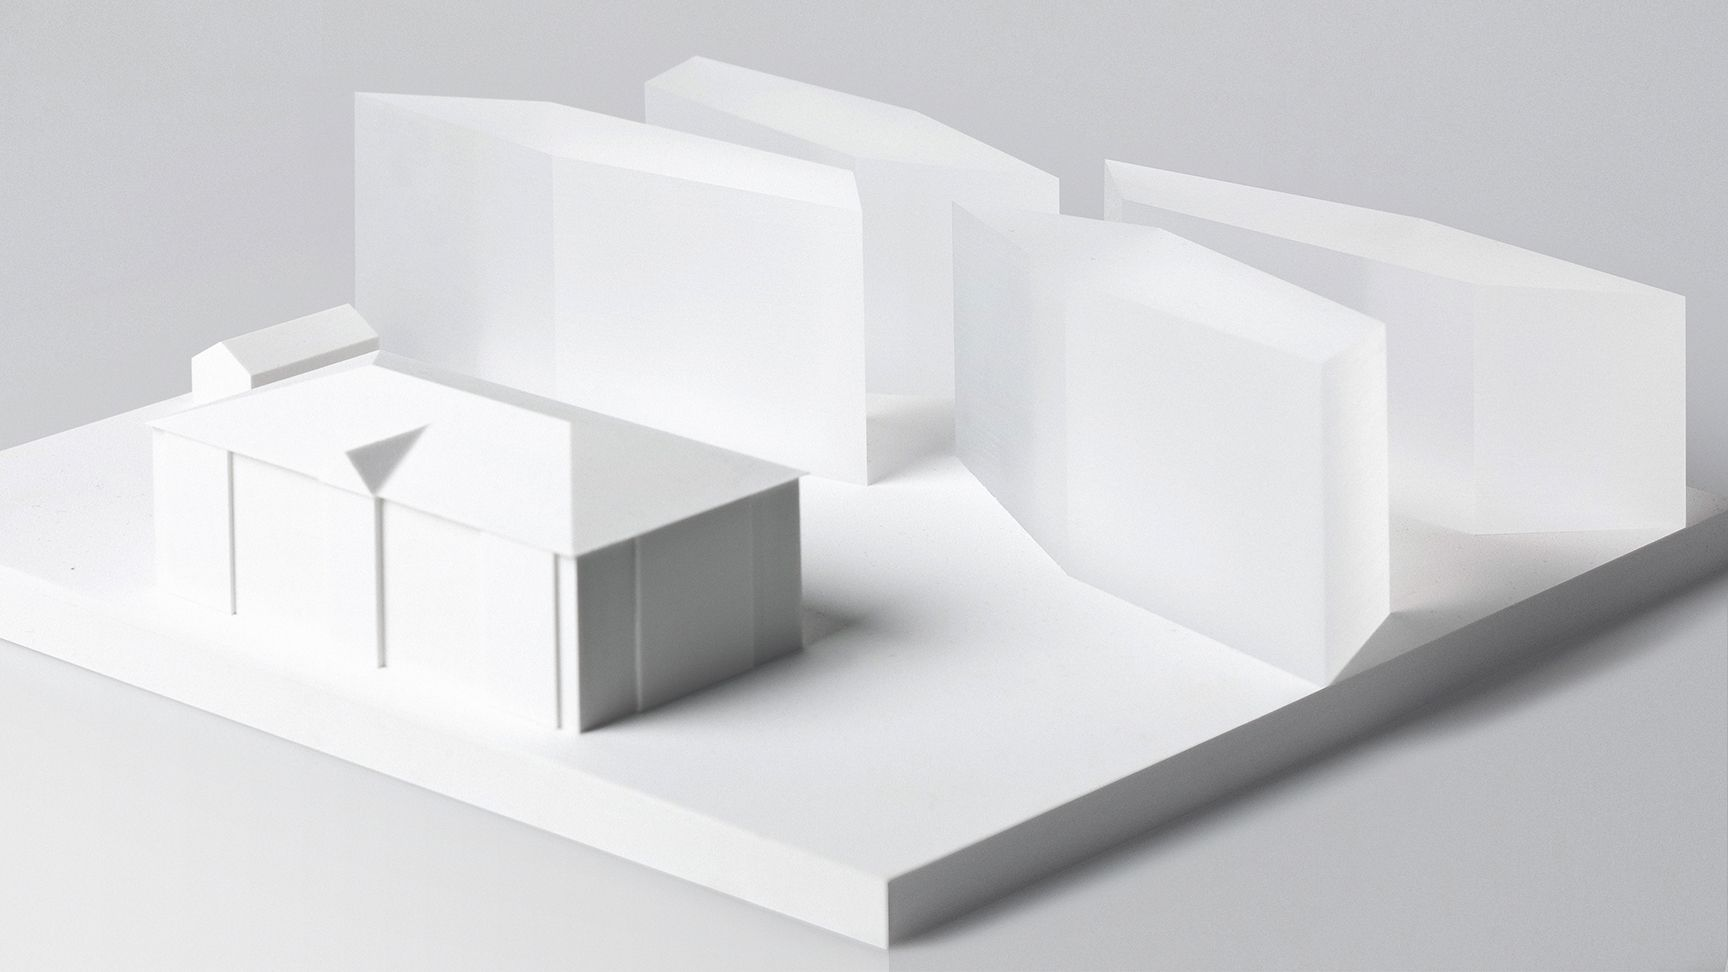 Porvoo Municipal Office Building. Scale model 1:400. CNC cut acrylic and plastic.